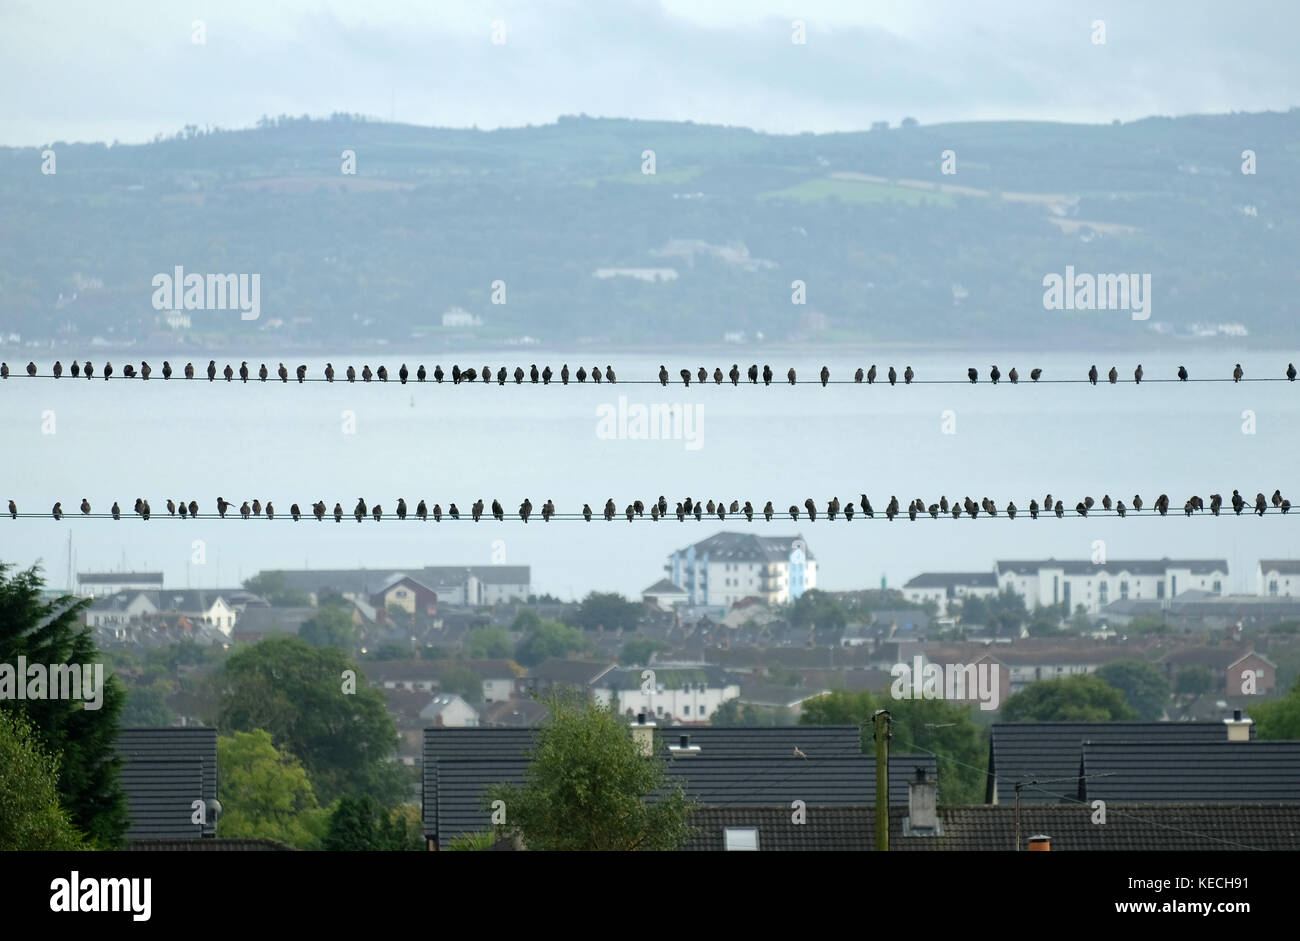 Flock of starlings on telegraph wires, Carrickfergus, Northern Ireland. - Stock Image